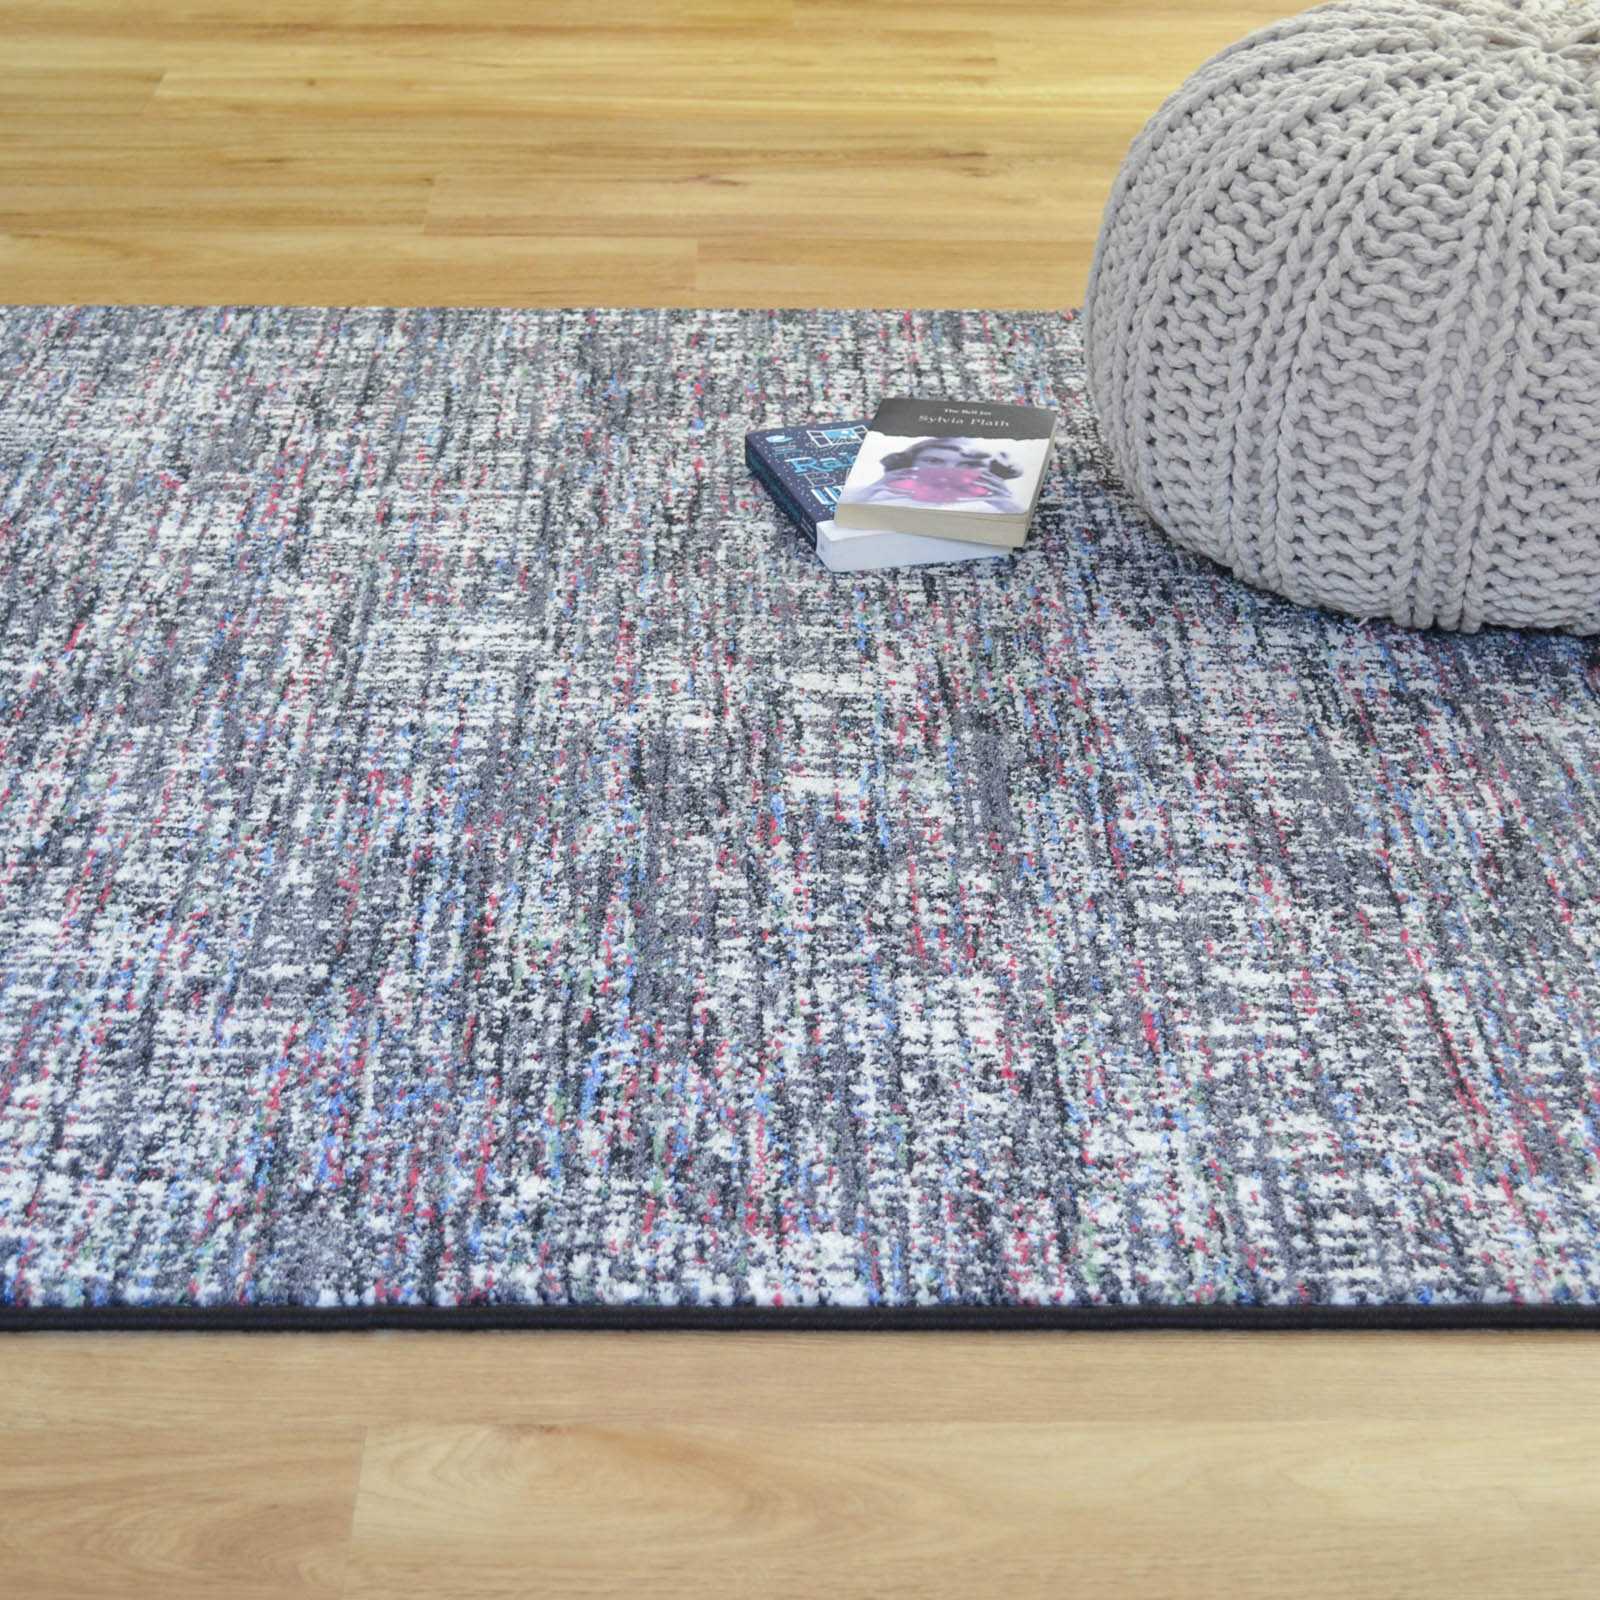 Woodstock Rugs 32219 7268 Grey and Pink